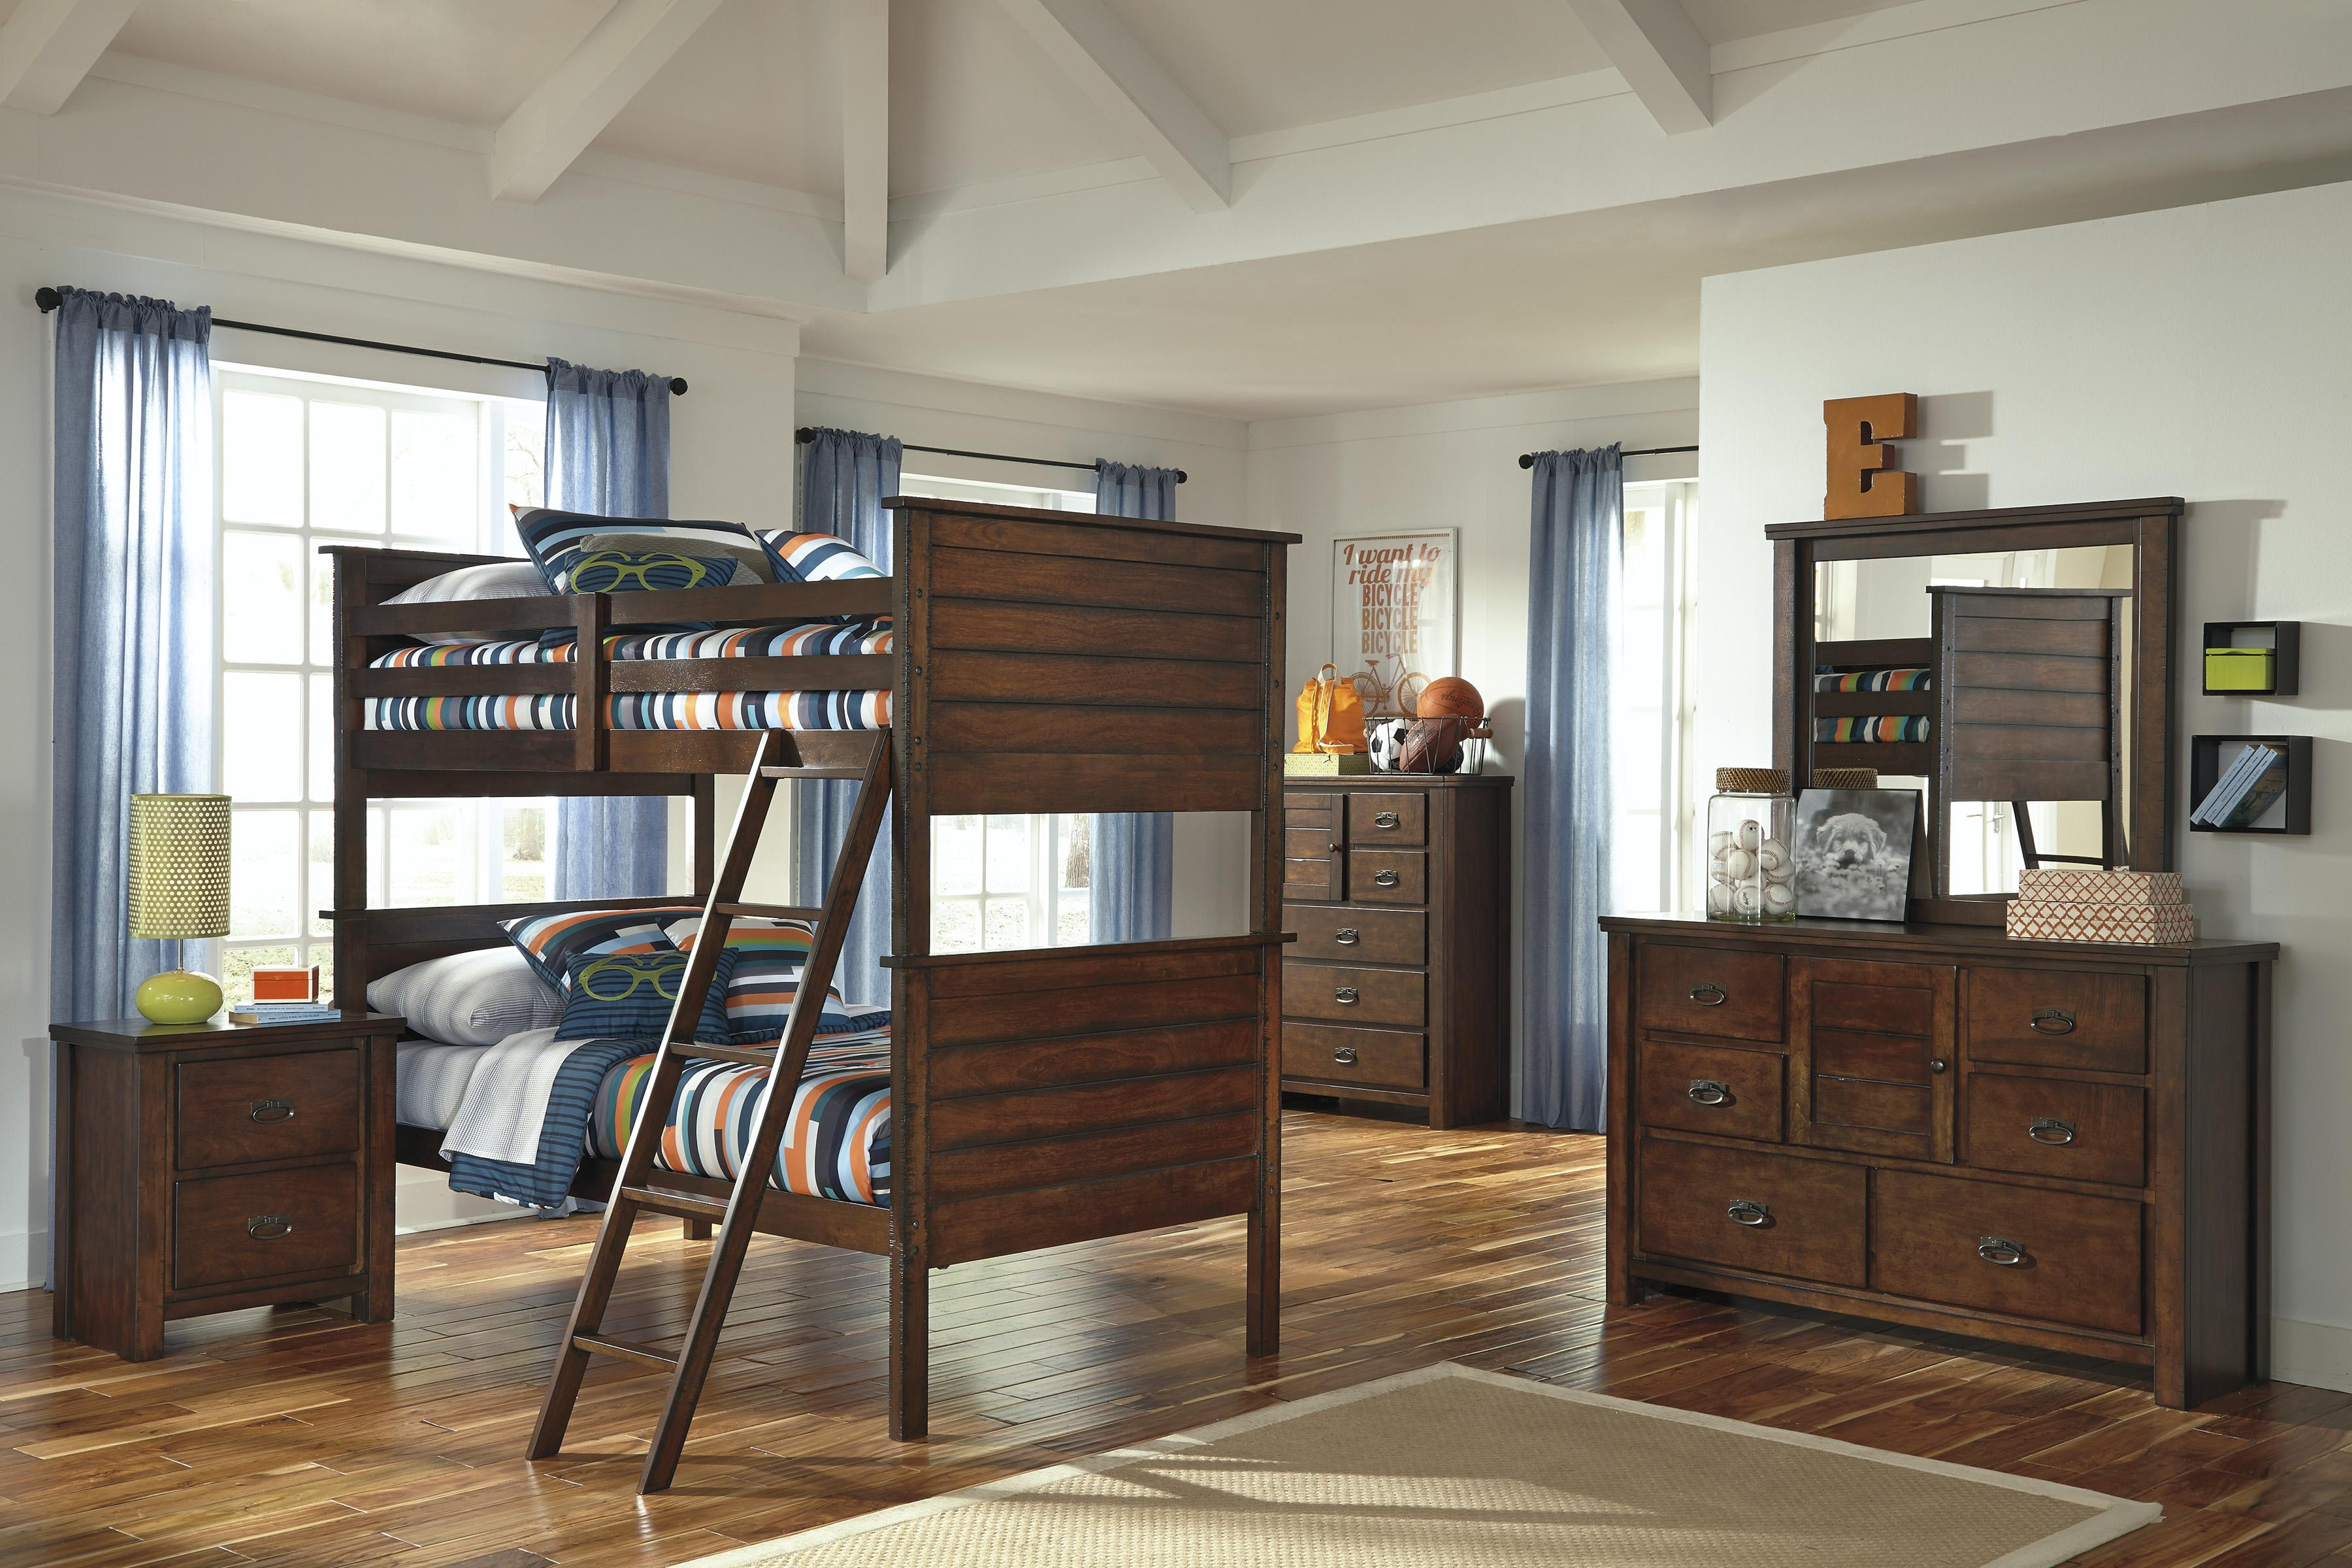 Signature Design by Ashley Ladiville Twin/Twin Bedroom Group - Item Number: B567 T Bedroom Group 2